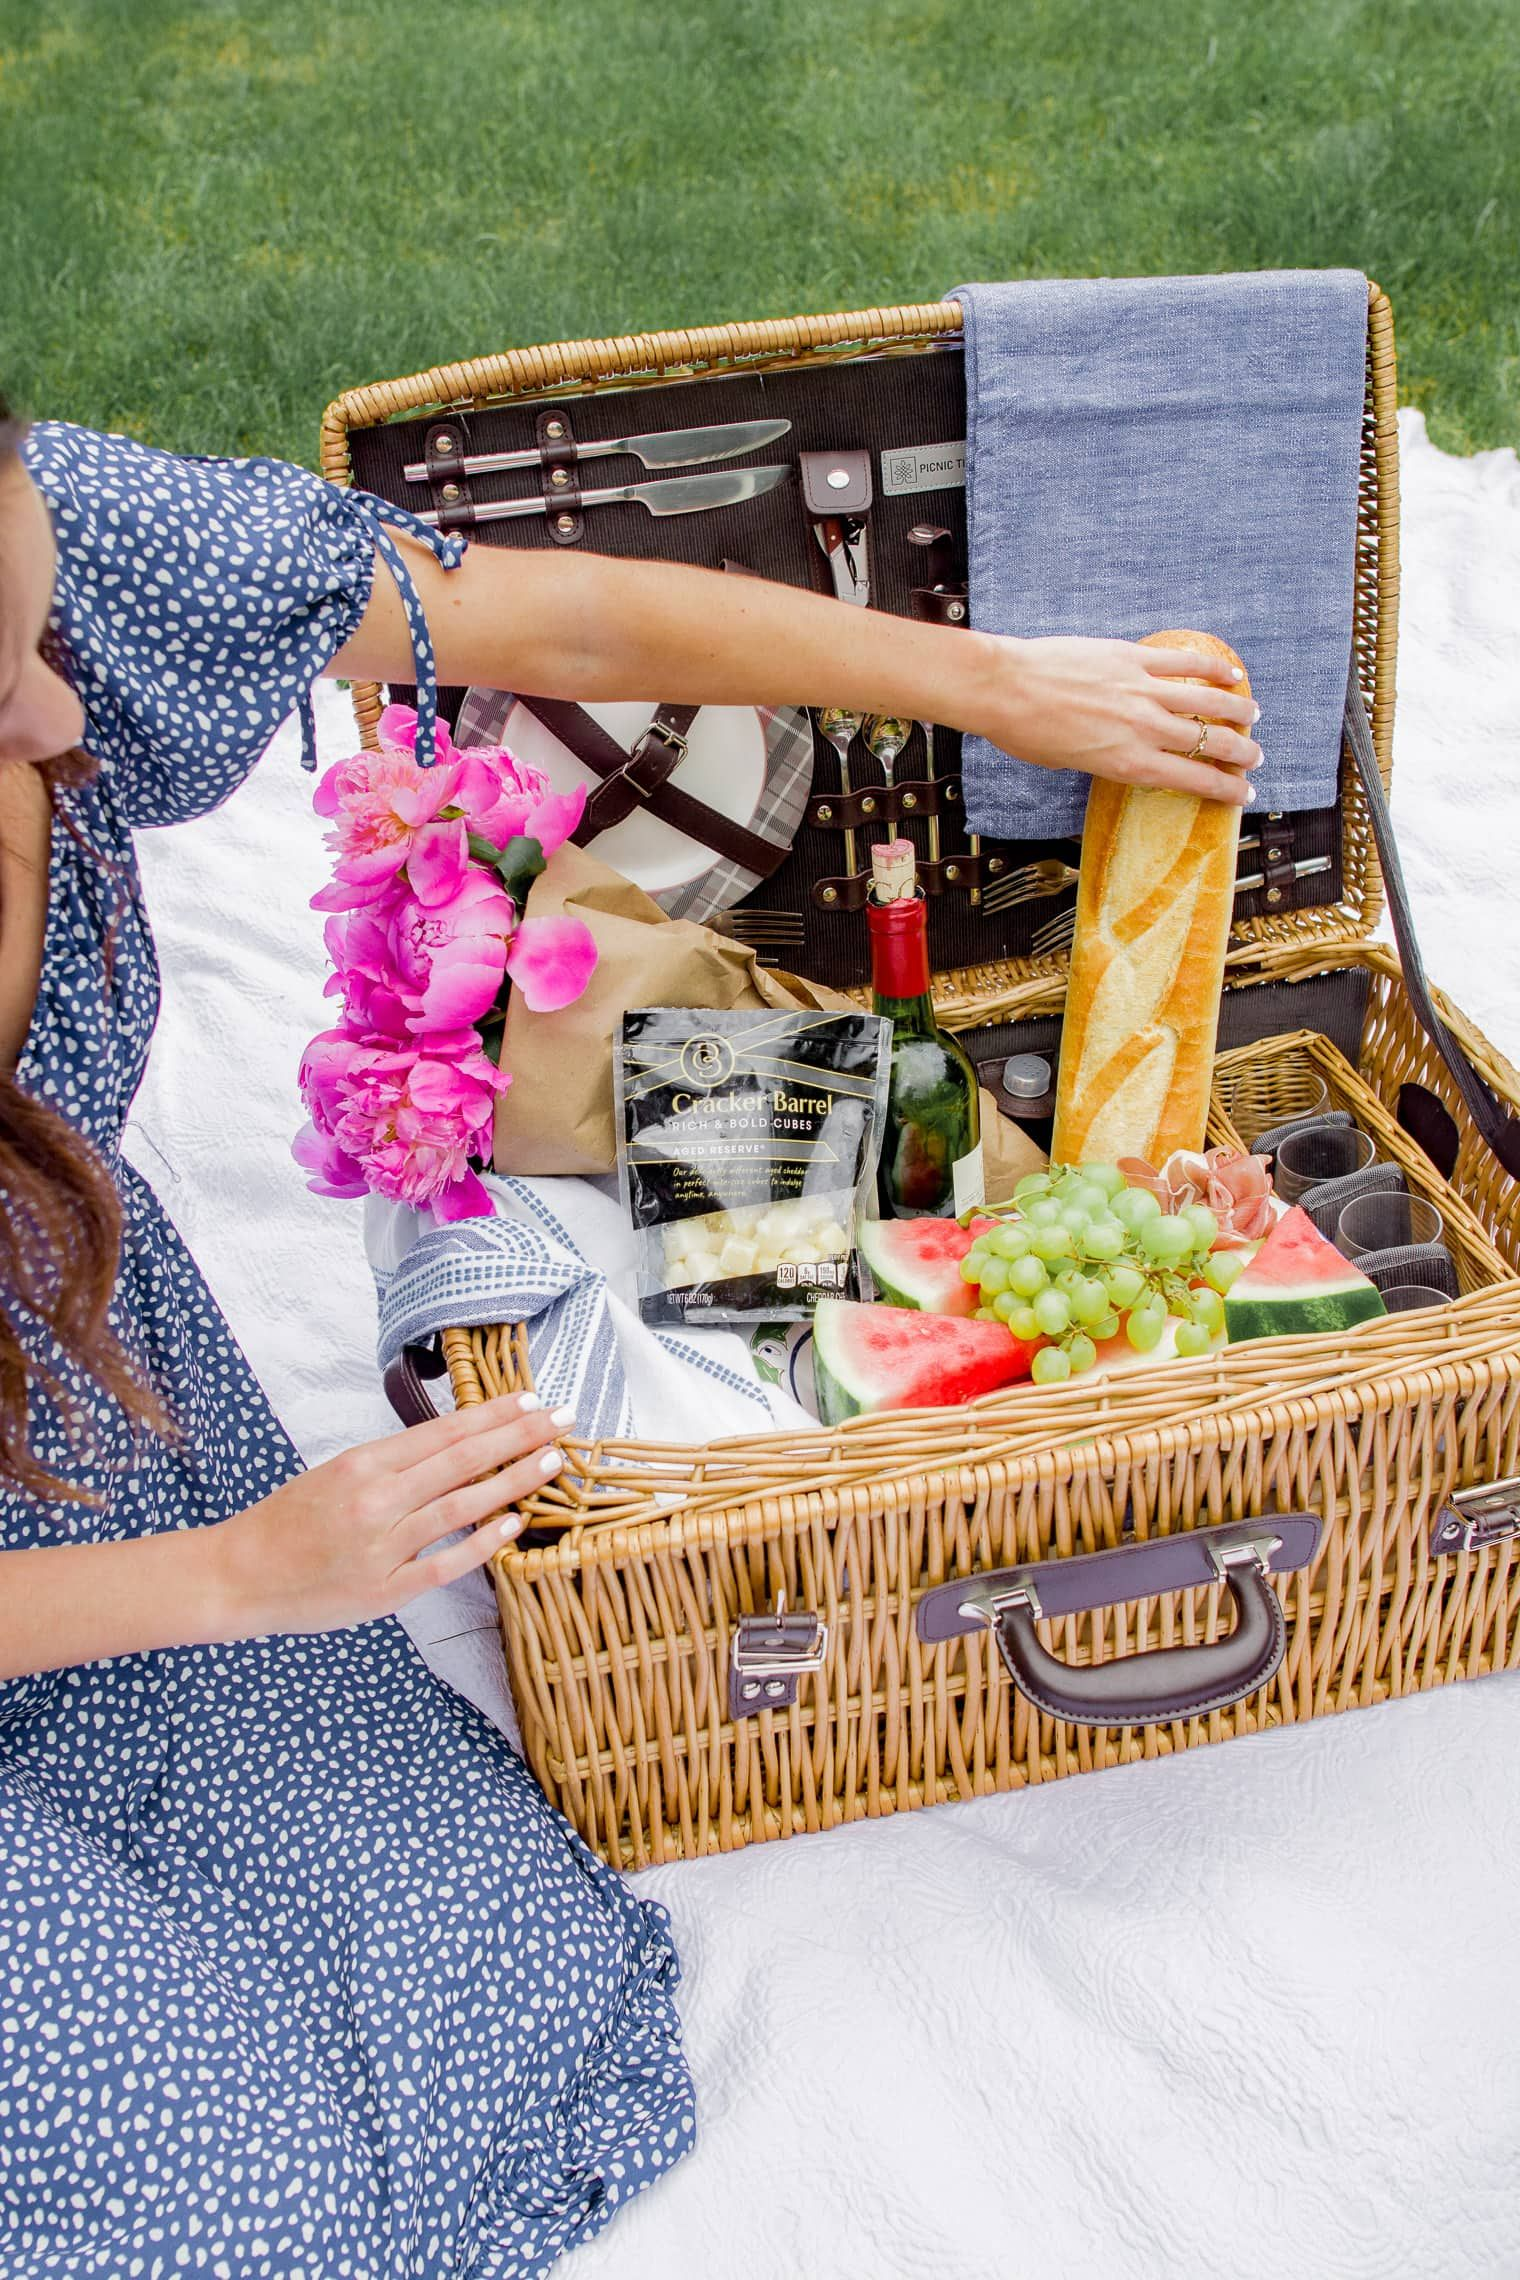 What To Bring To A Picnic: An Easy Picnic Packing List